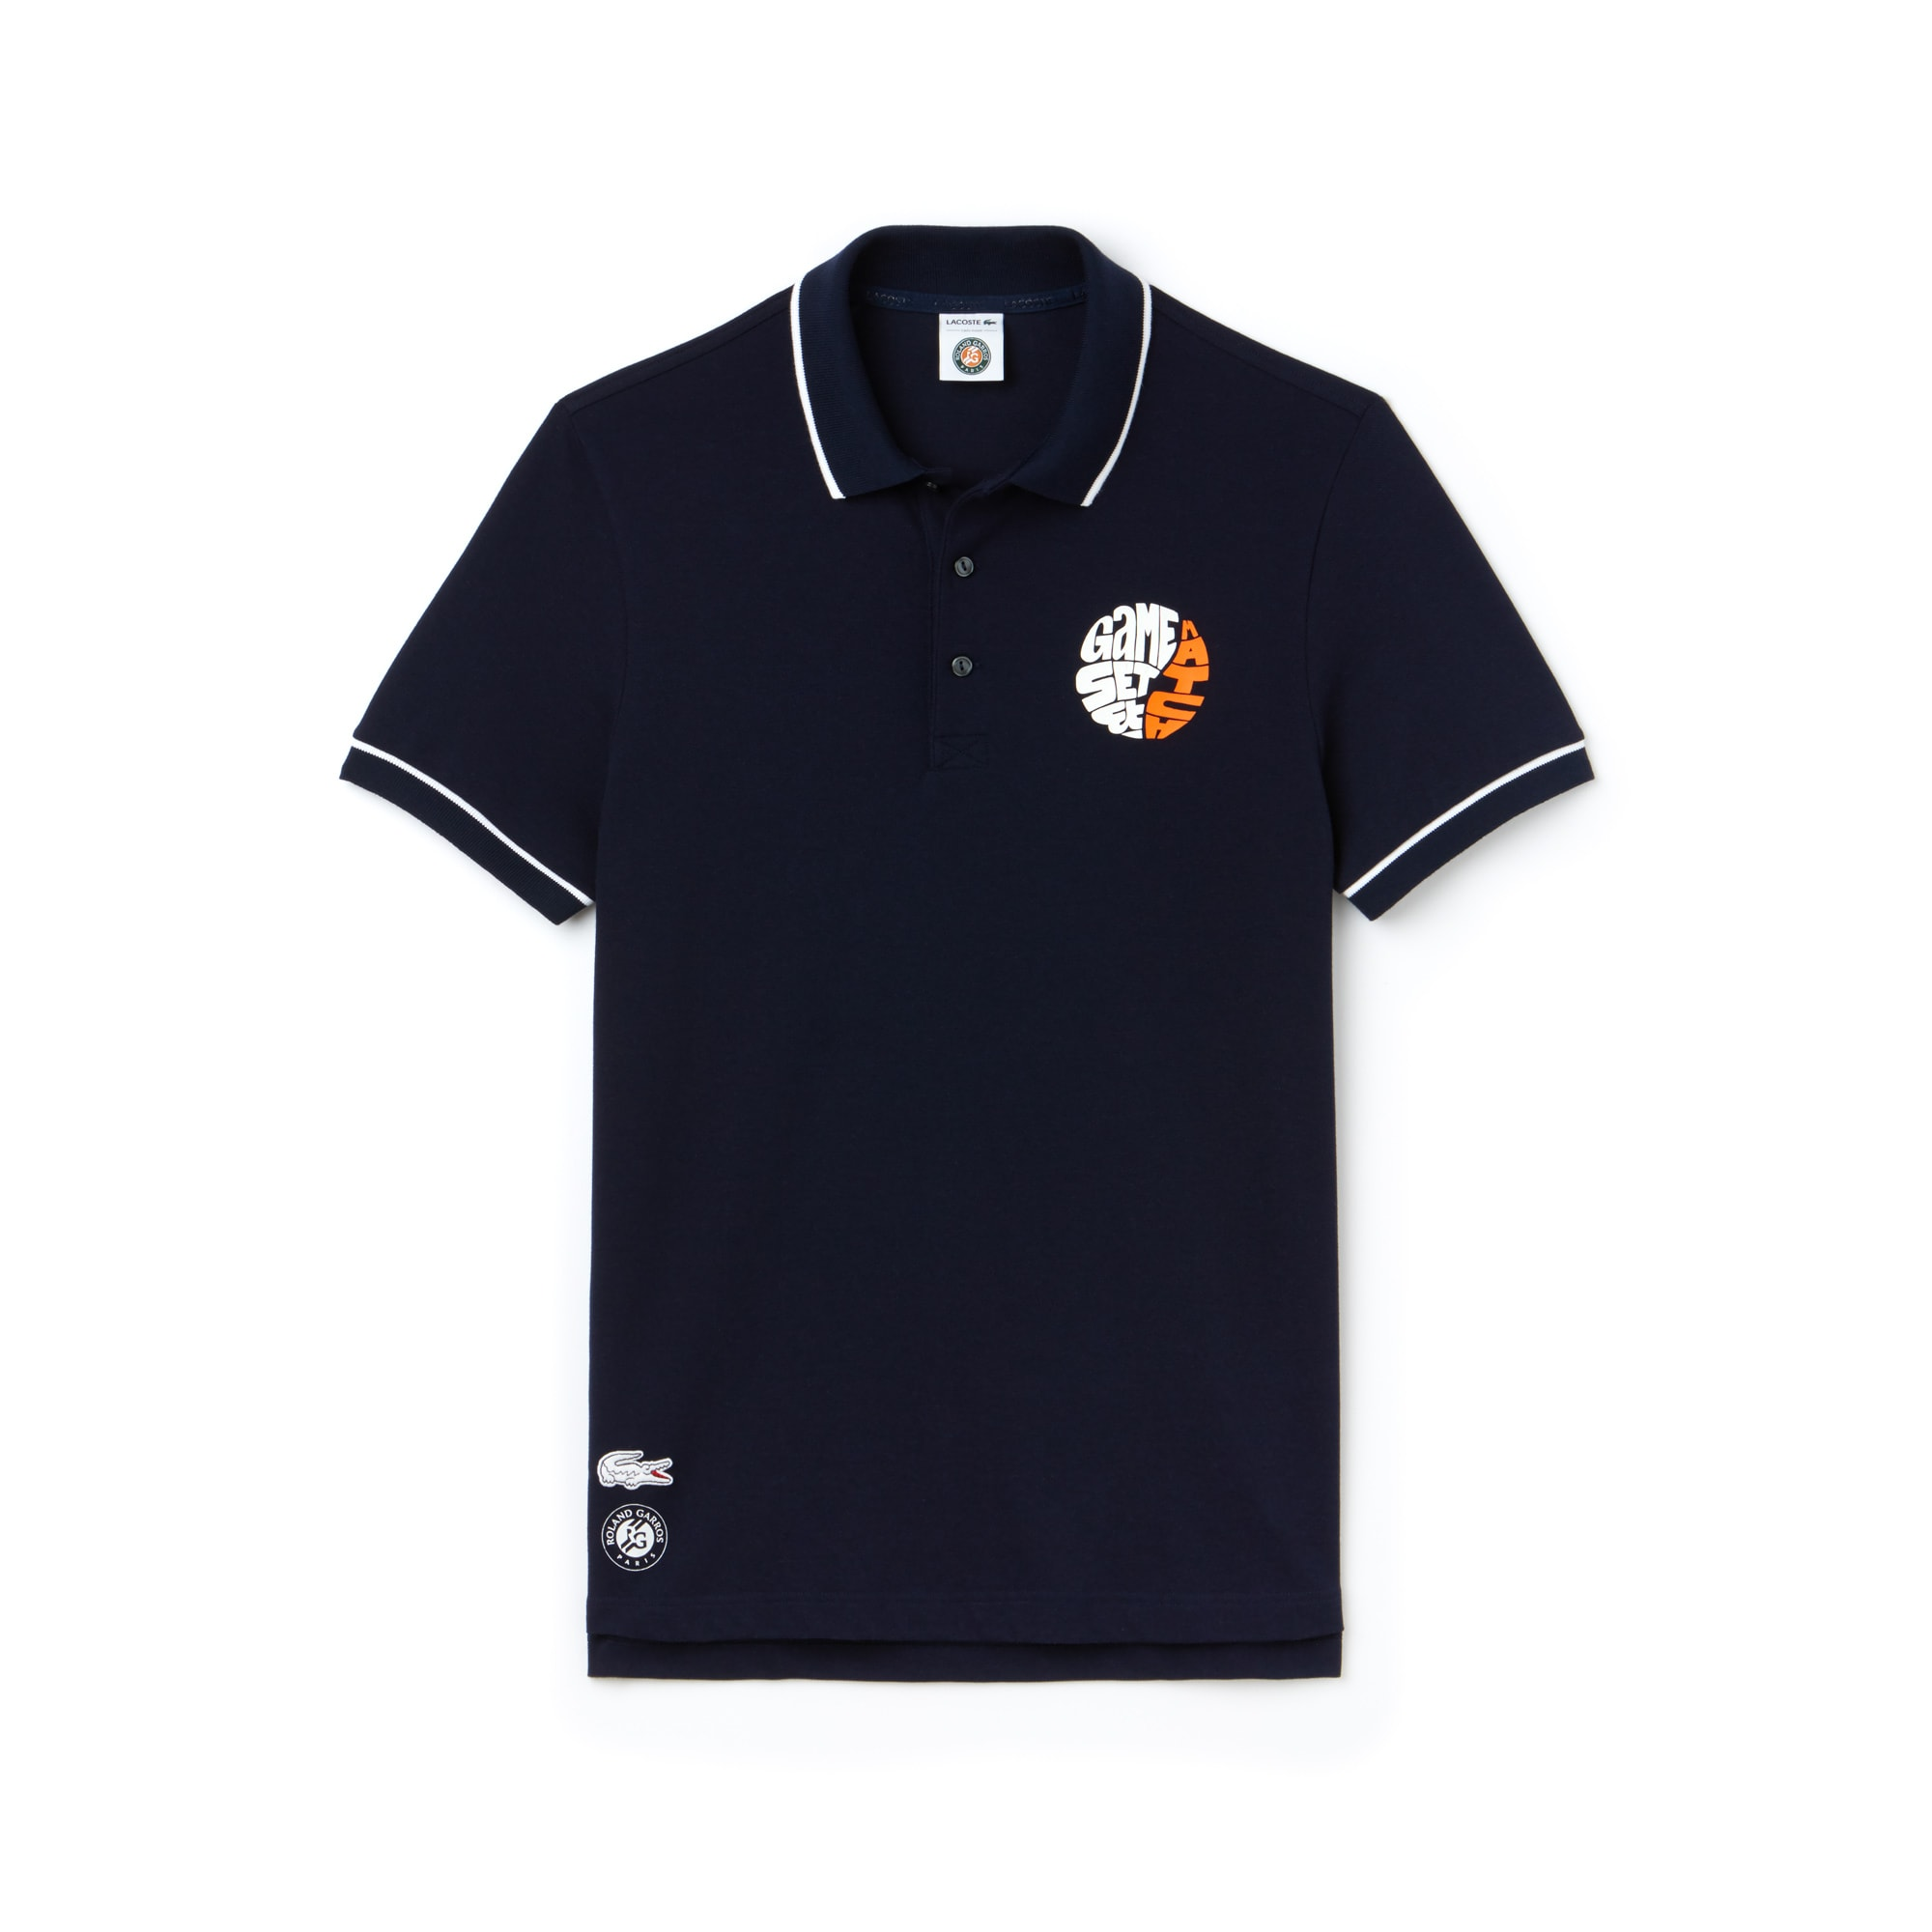 Men's Lacoste SPORT Roland Garros Edition Stretch Mini Piqué Polo Shirt